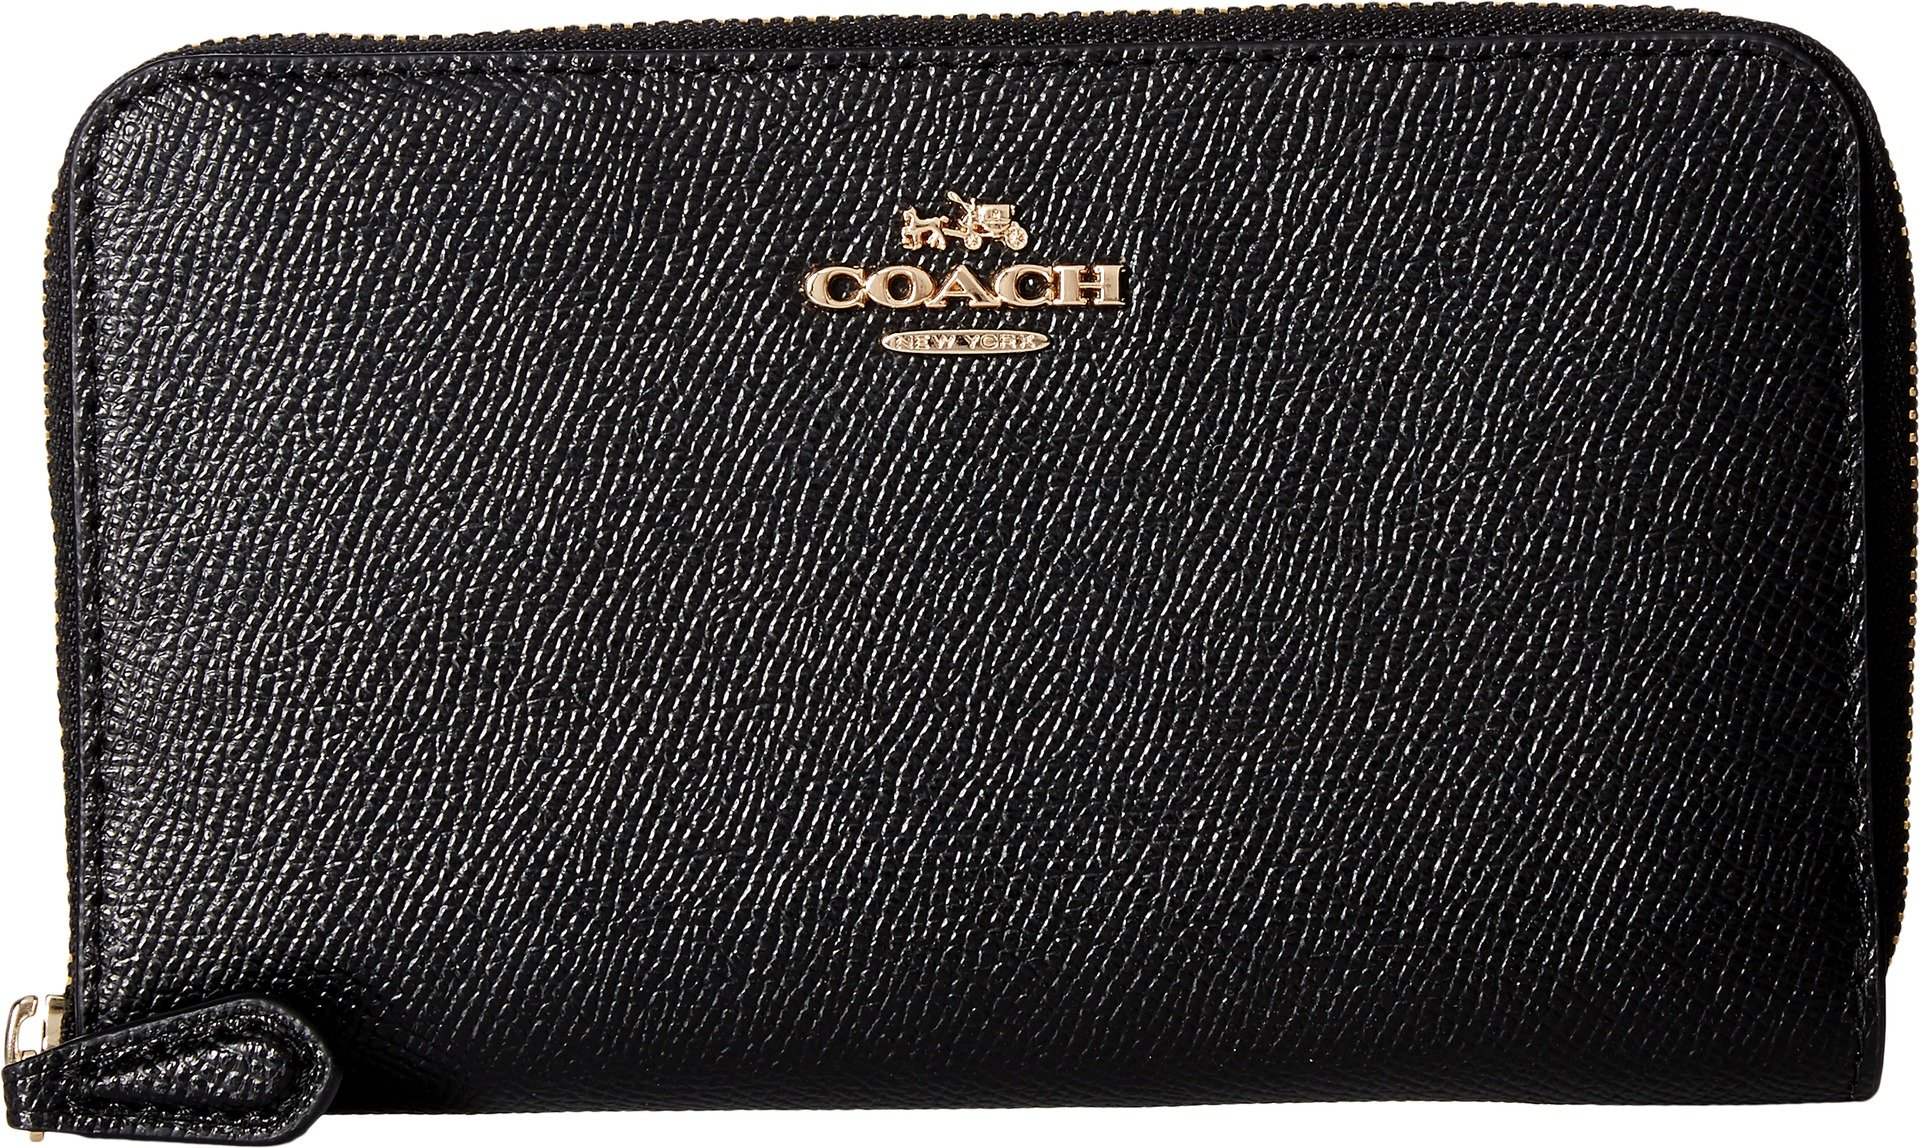 COACH Women's Crossgrain Leather Medium Zip Around Wallet Li/Black Wallets by Coach